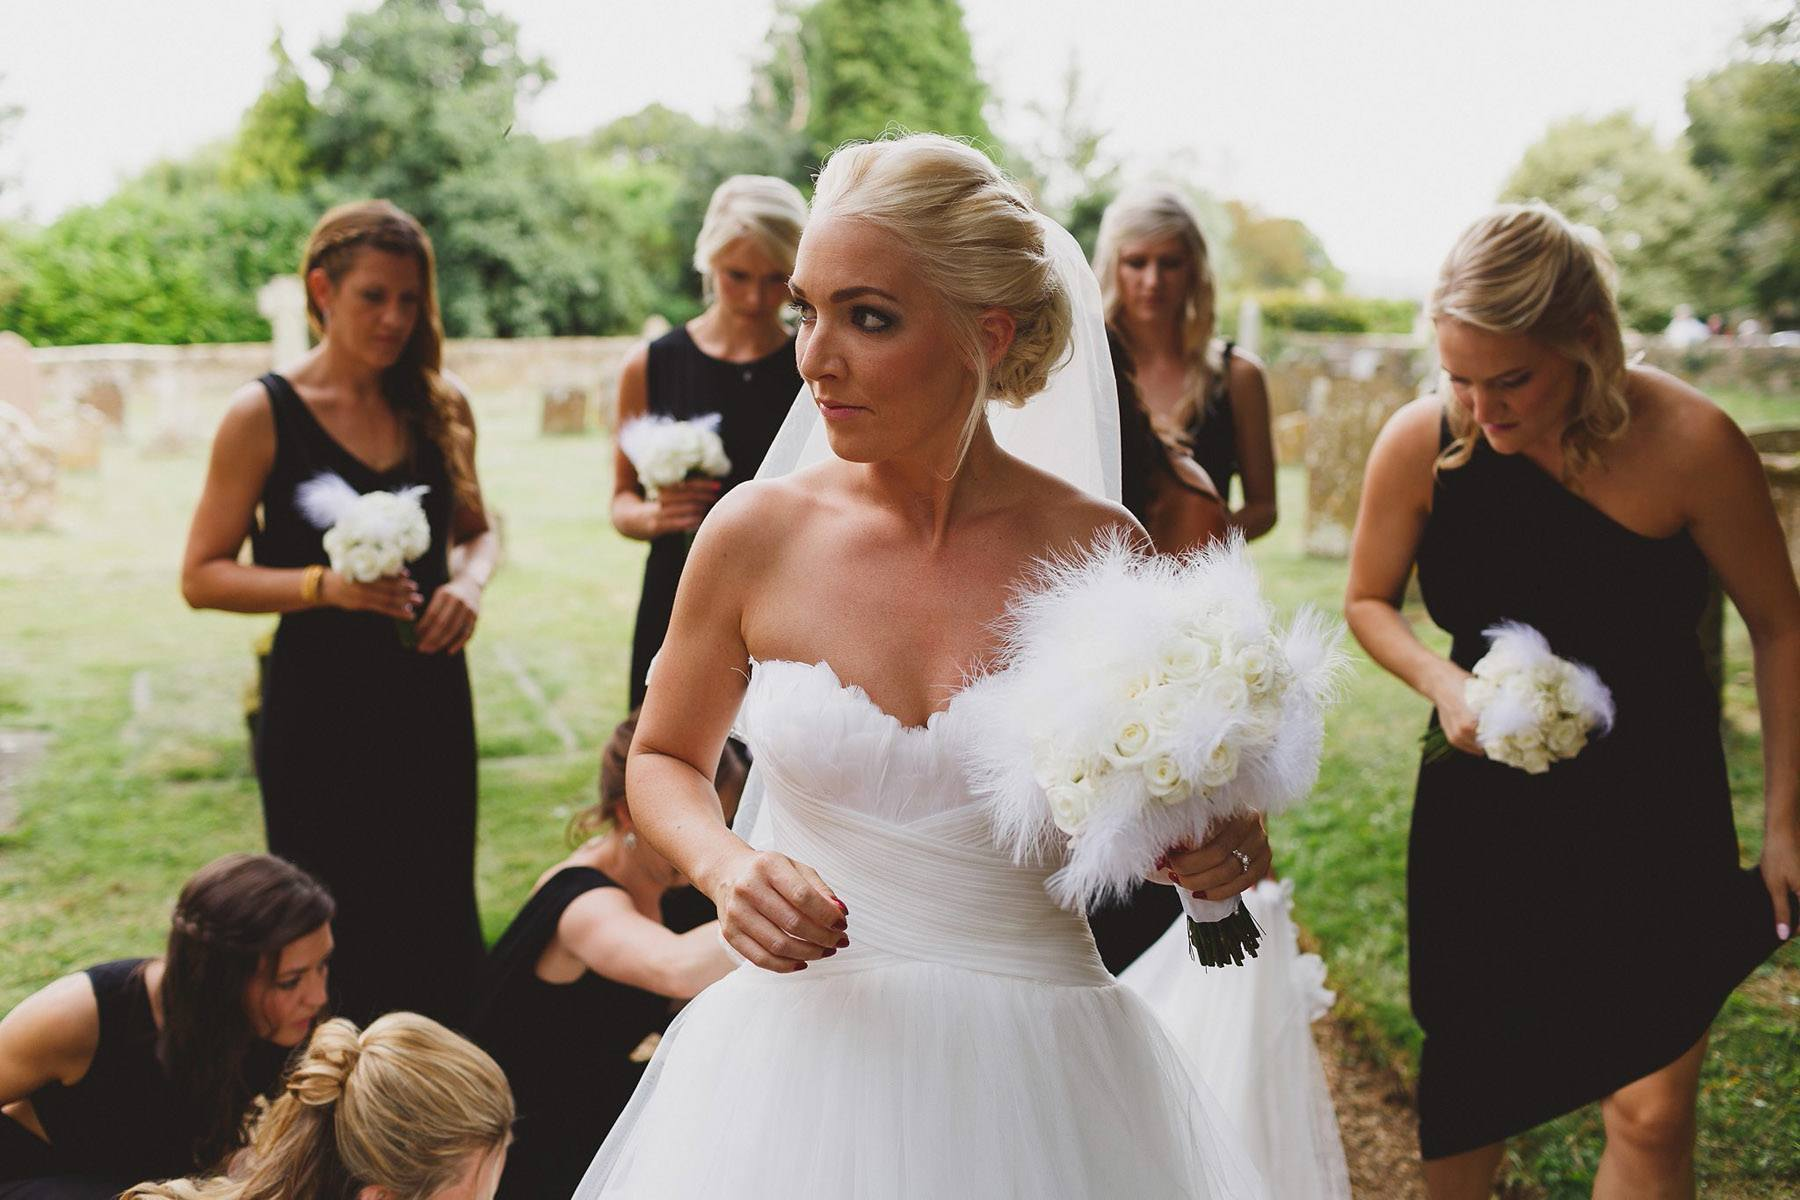 oxfordshire-wedding-photographer-026